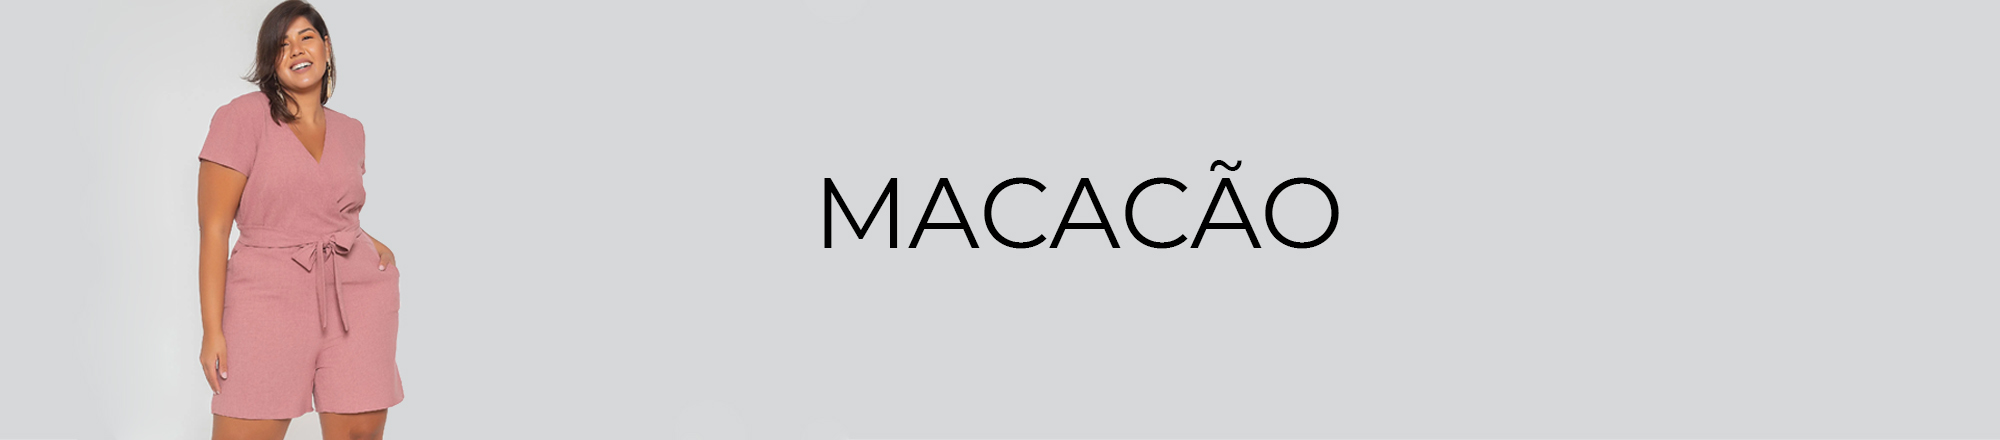 Banner-macacao